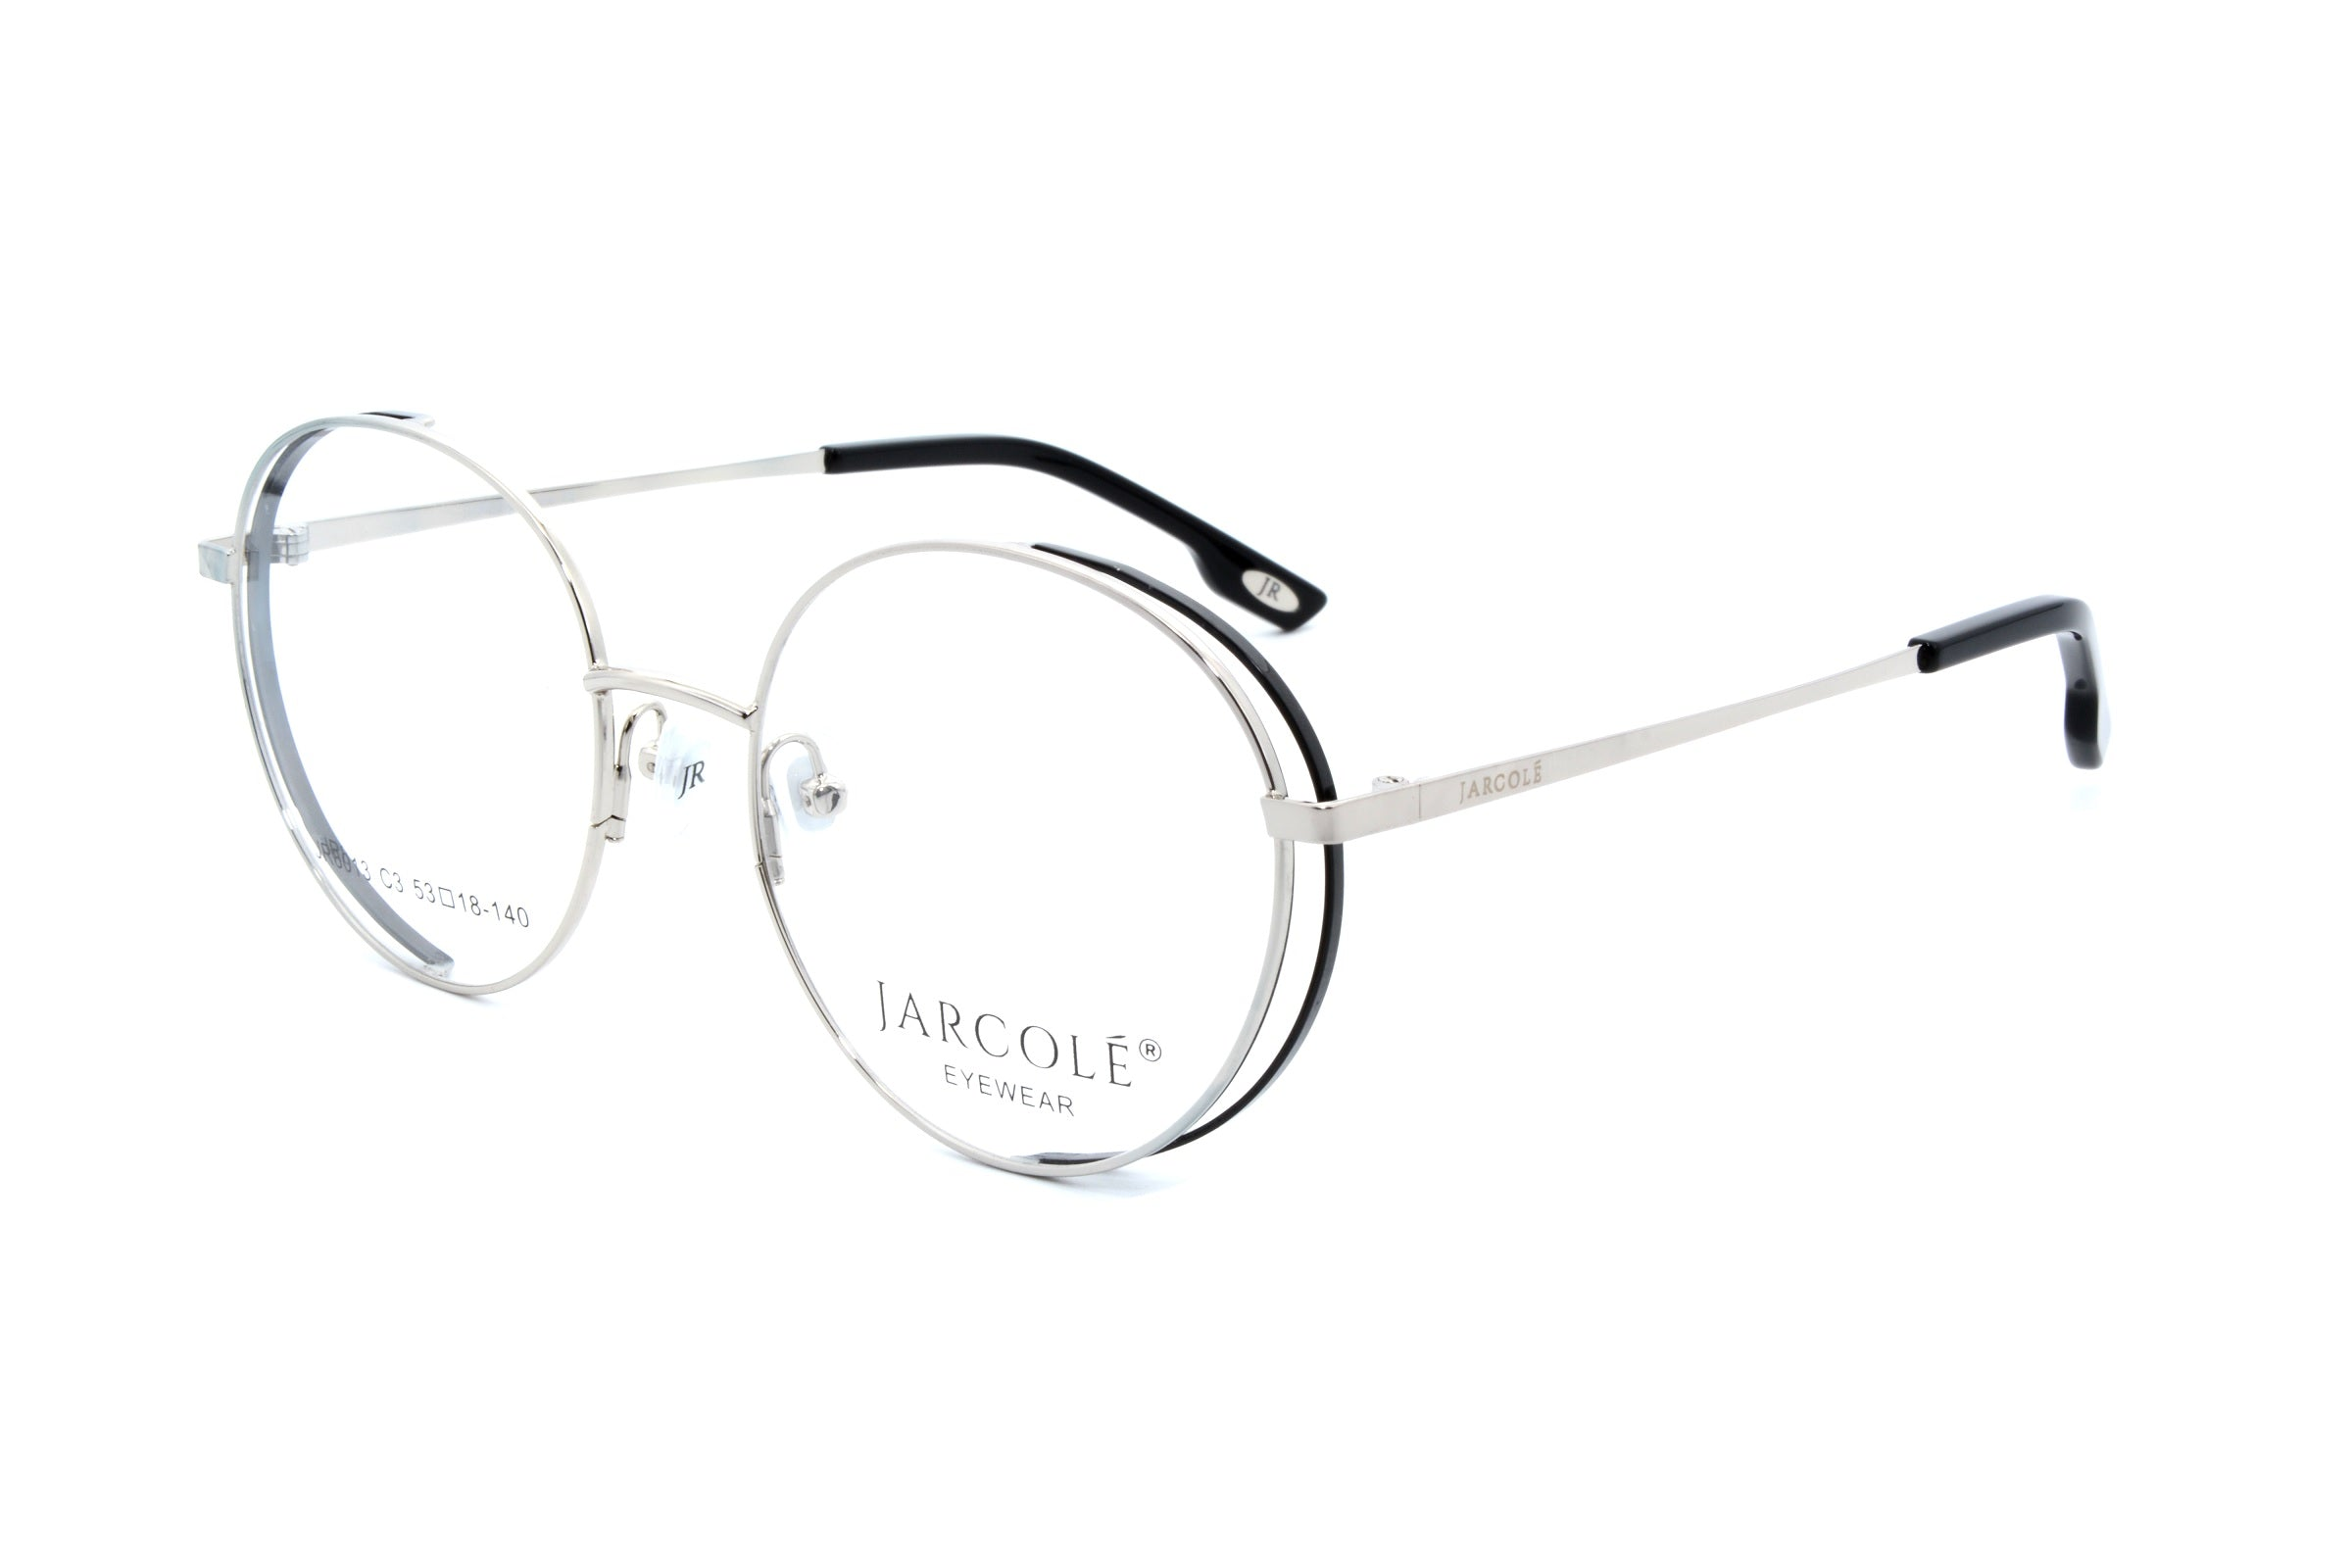 Jarcole eyewear 8013, C3 - Optics Trading